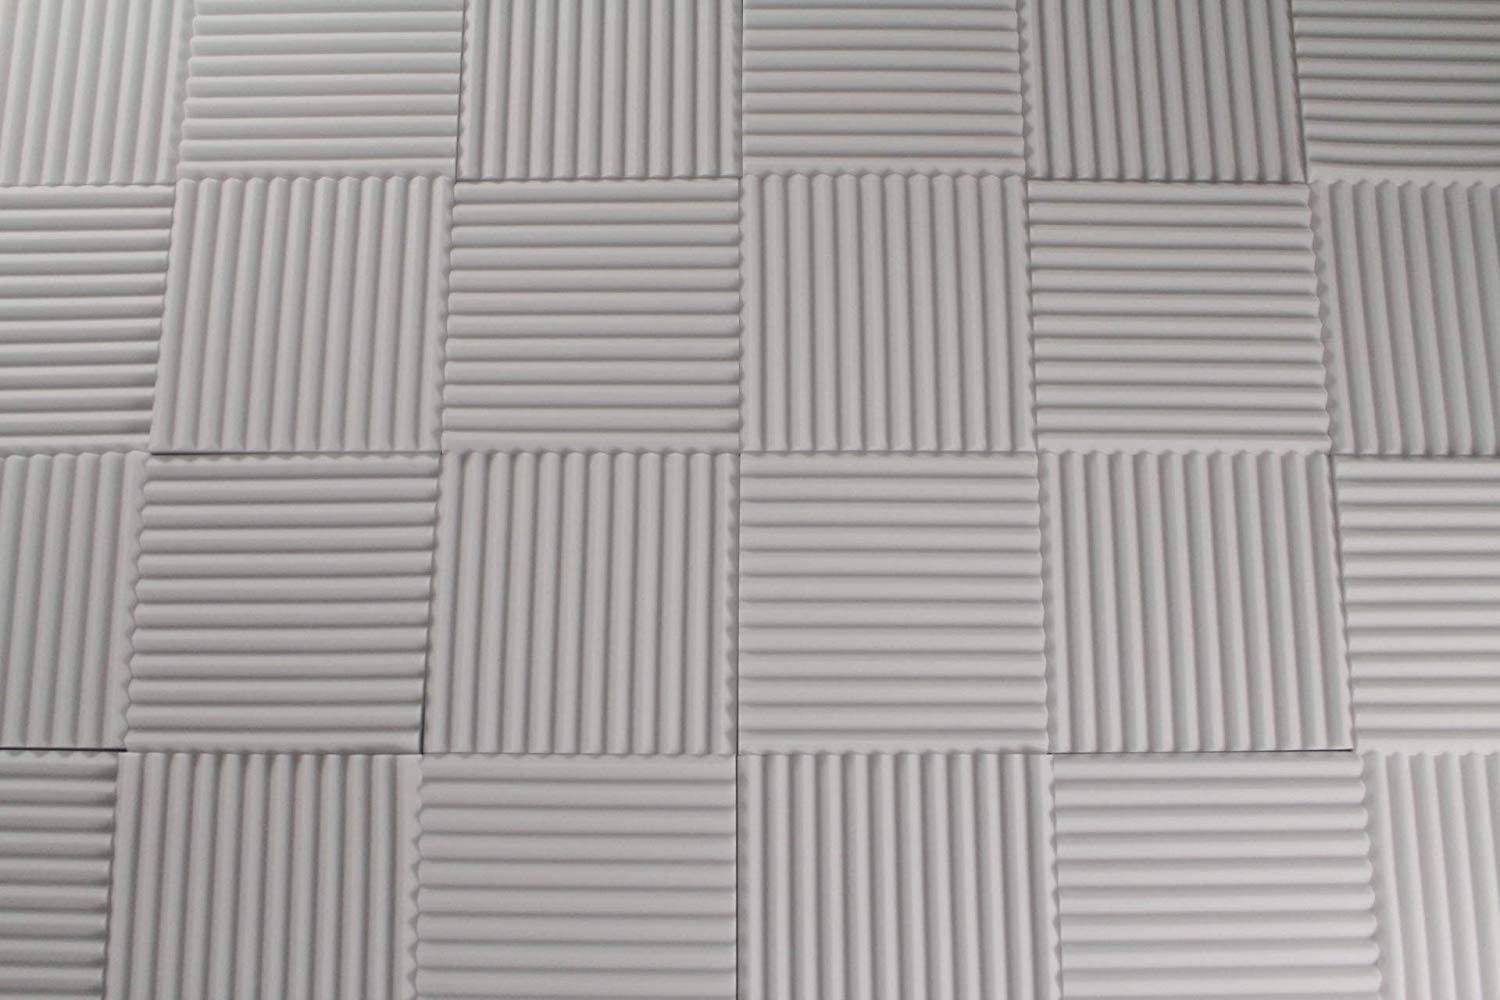 White Acoustic Foam Panels - Wedge Style Studio Foam Soundproofing Tiles - 12x12 Inch - Multiple Thicknesses (1 Inch Thick - 6 Pack)